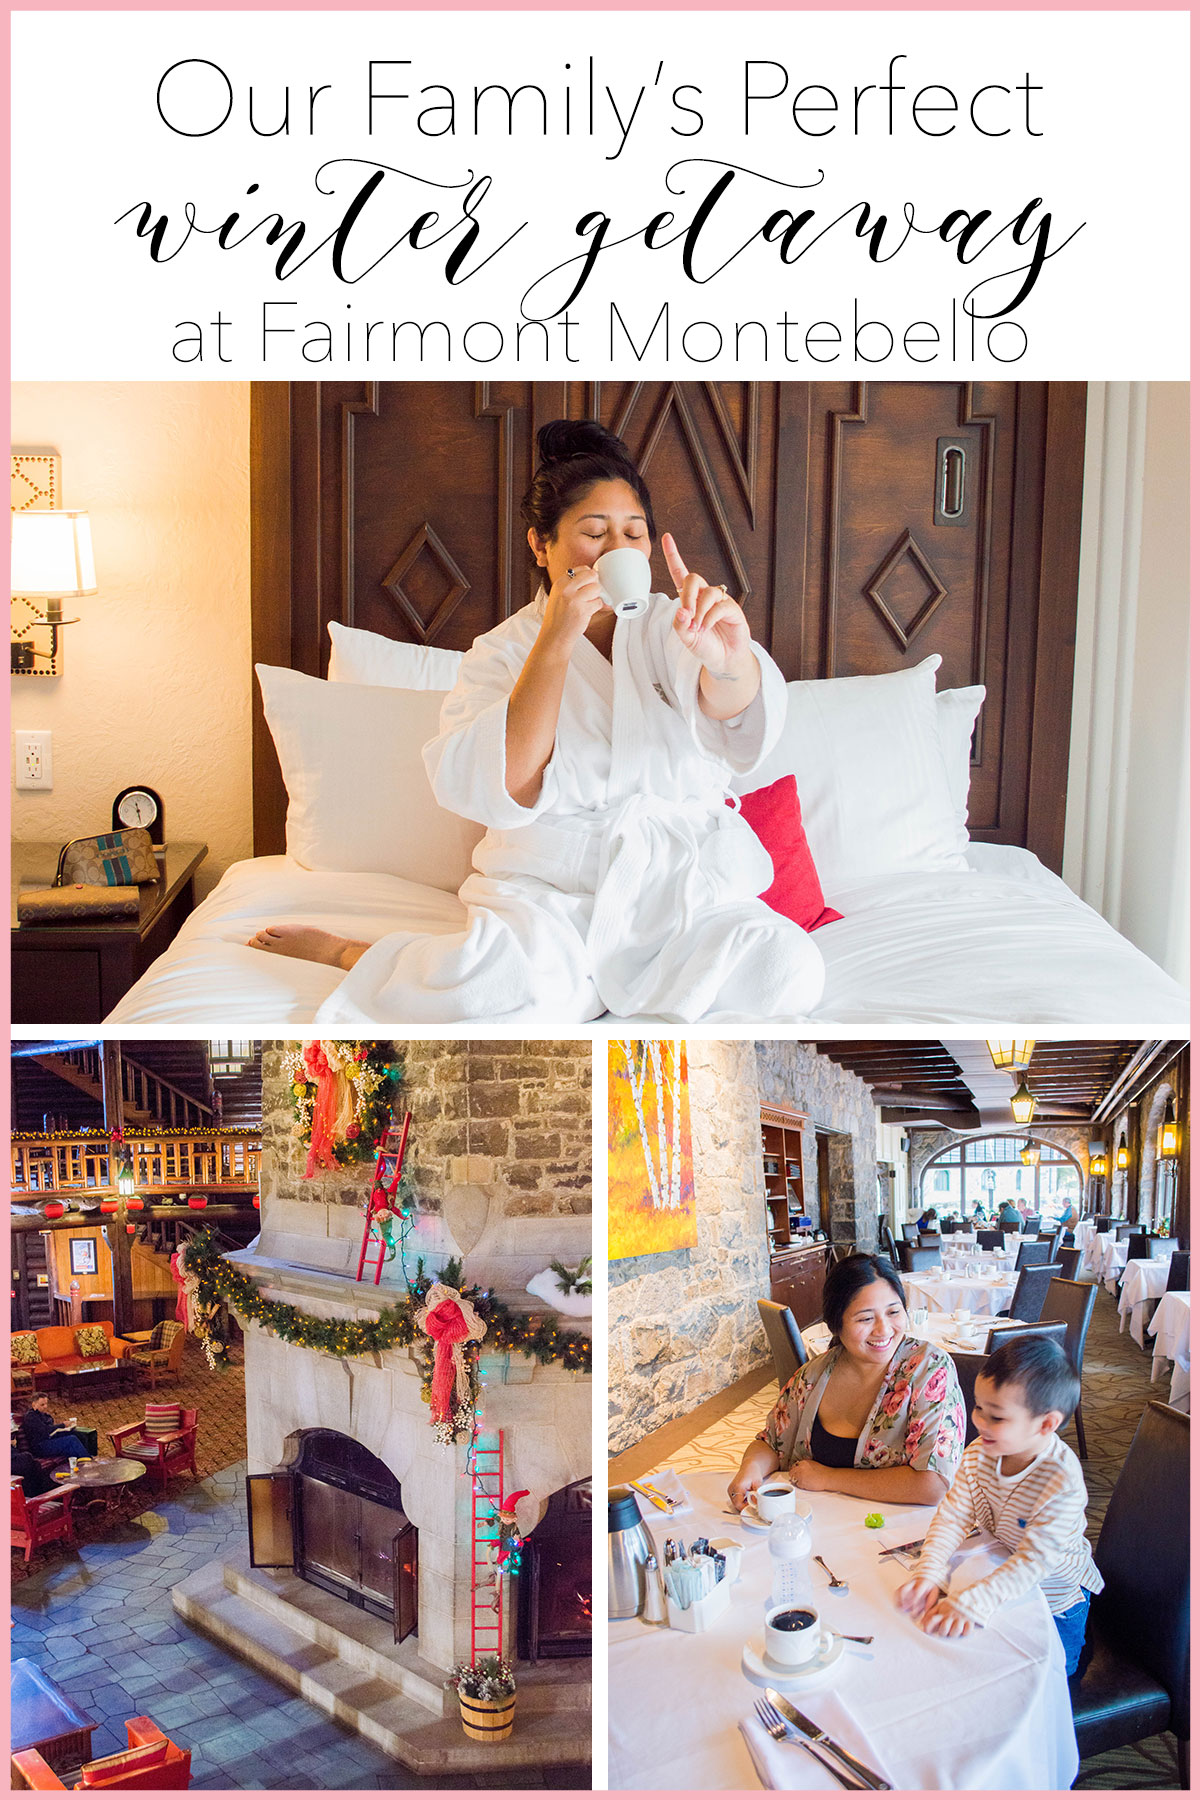 This is how our family spent the perfect 4 days at Fairmont Montebello - our #1 destination for our annual winter family vacation. #wintervacation #travelquebec